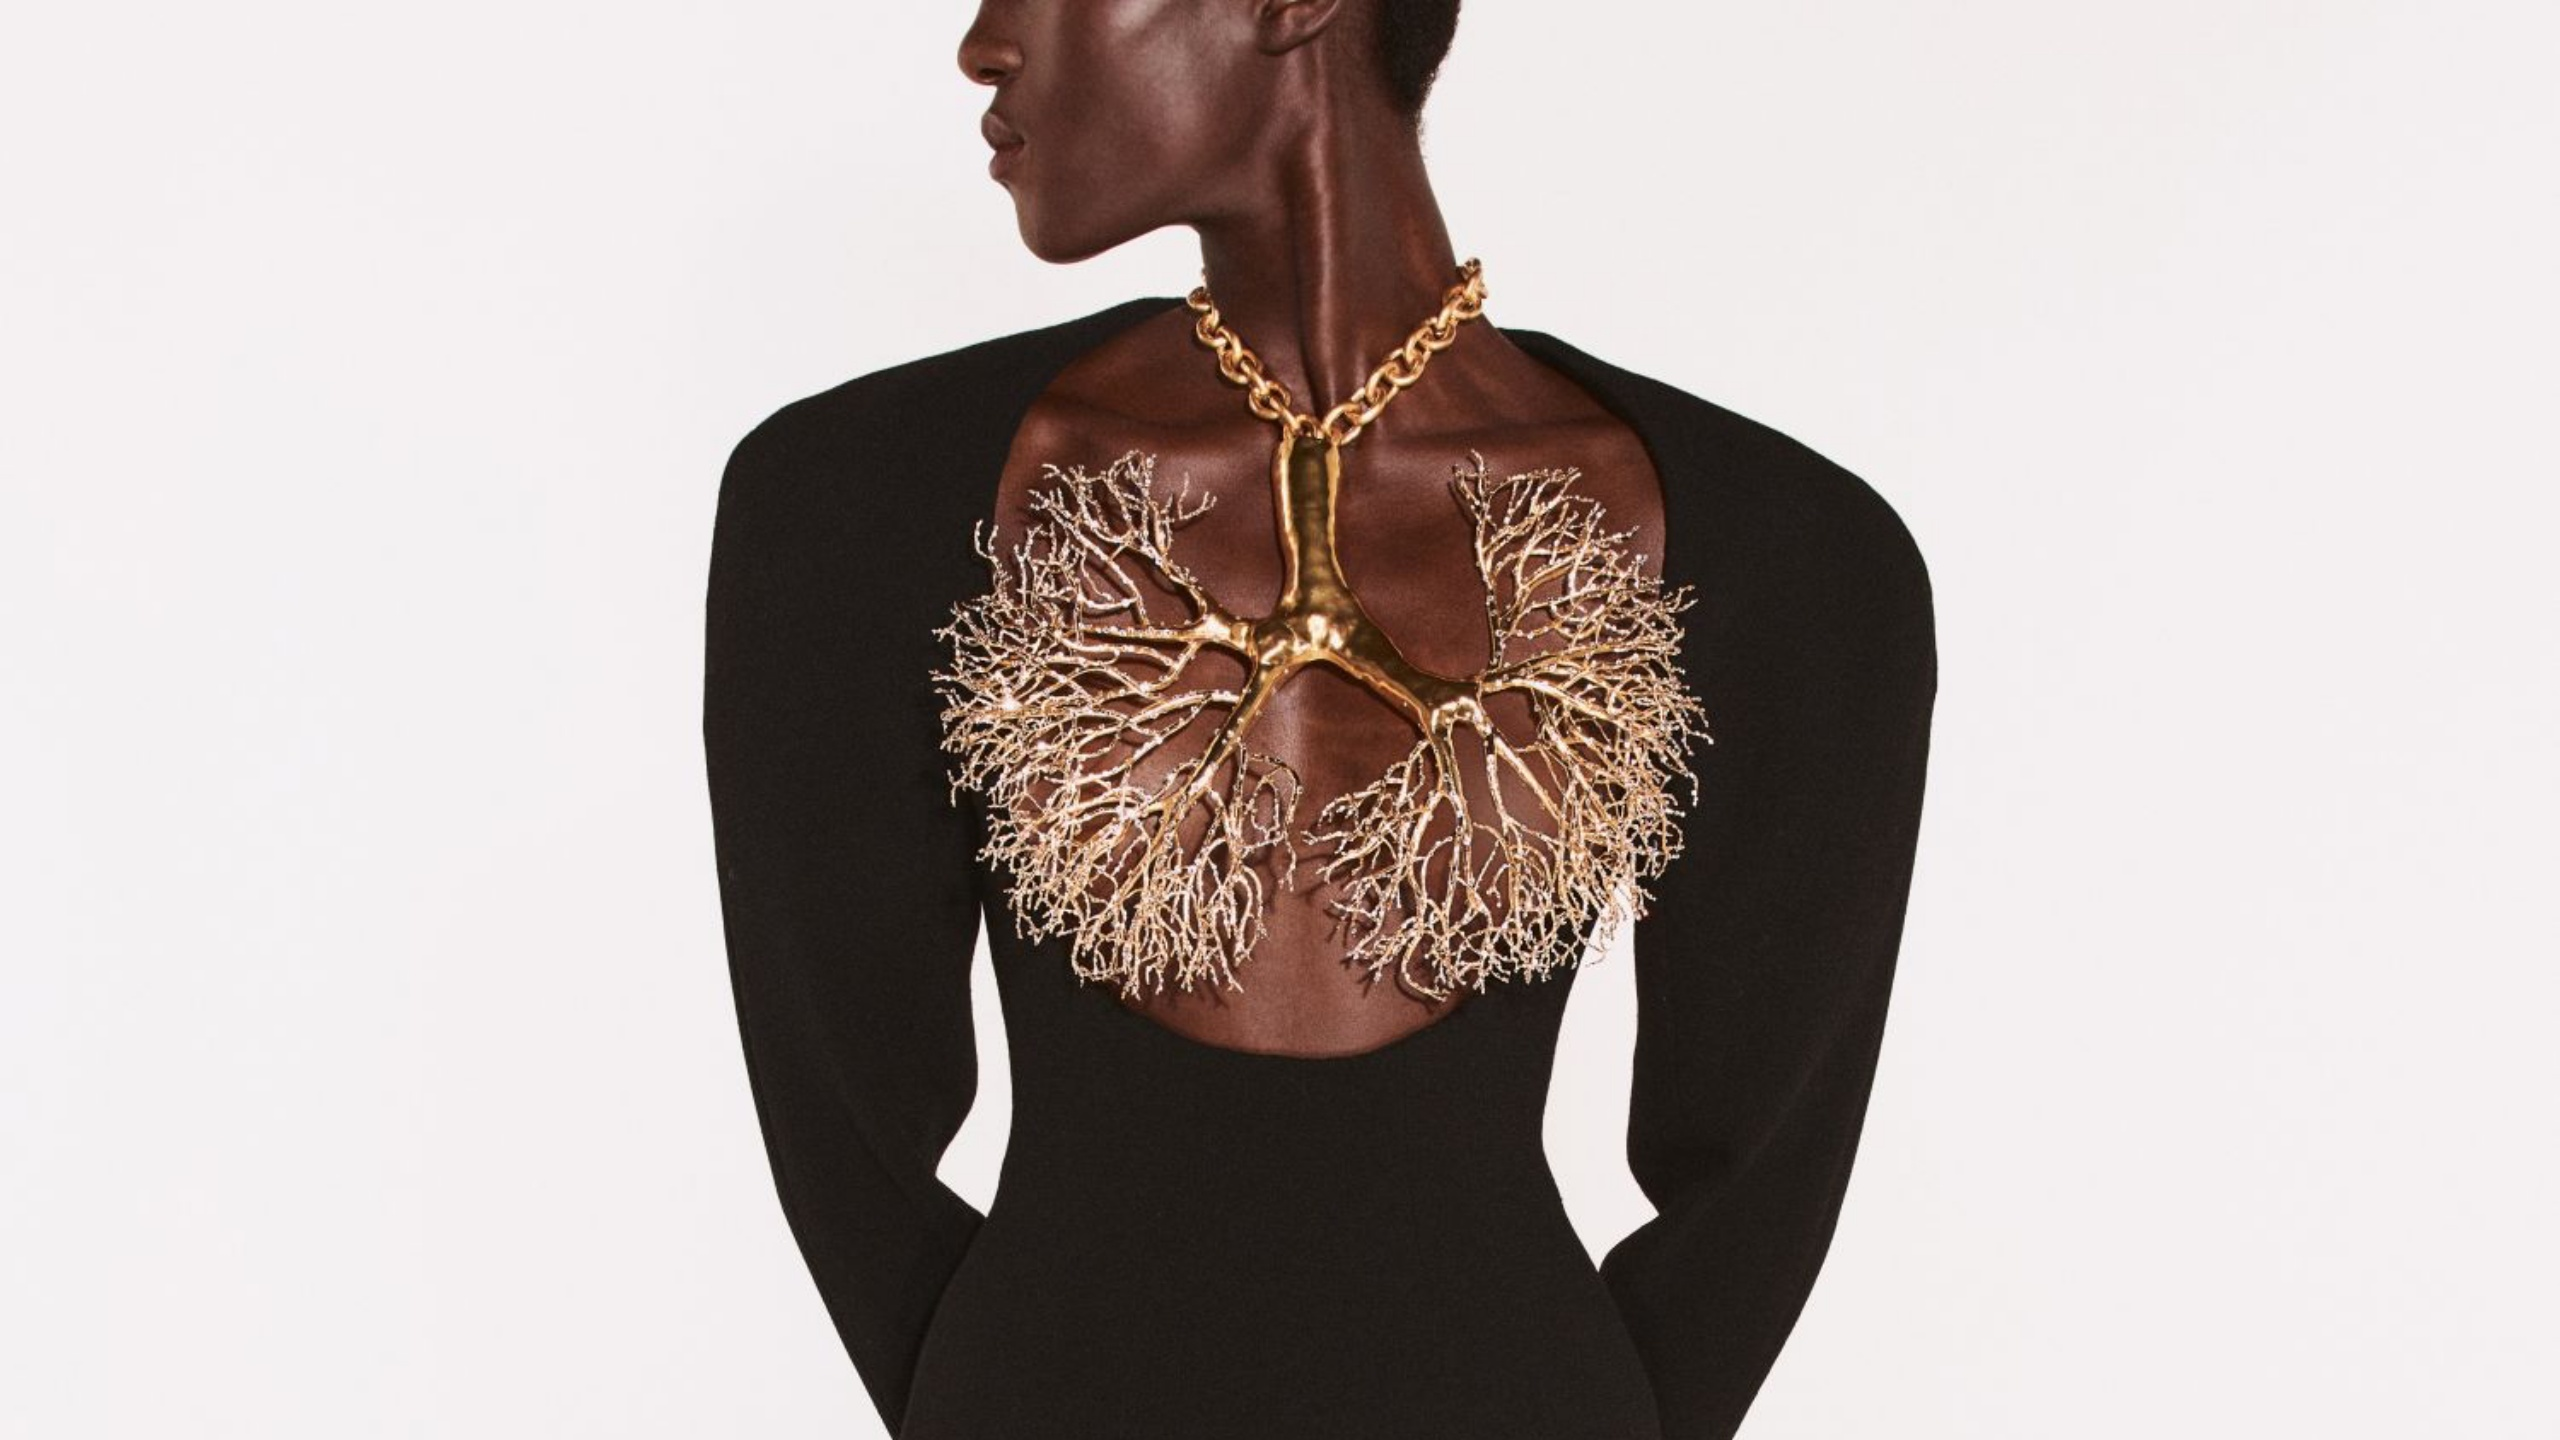 inspired-by-bella-hadid's-viral-look,-here-are-10-very-large-necklaces-to-cop